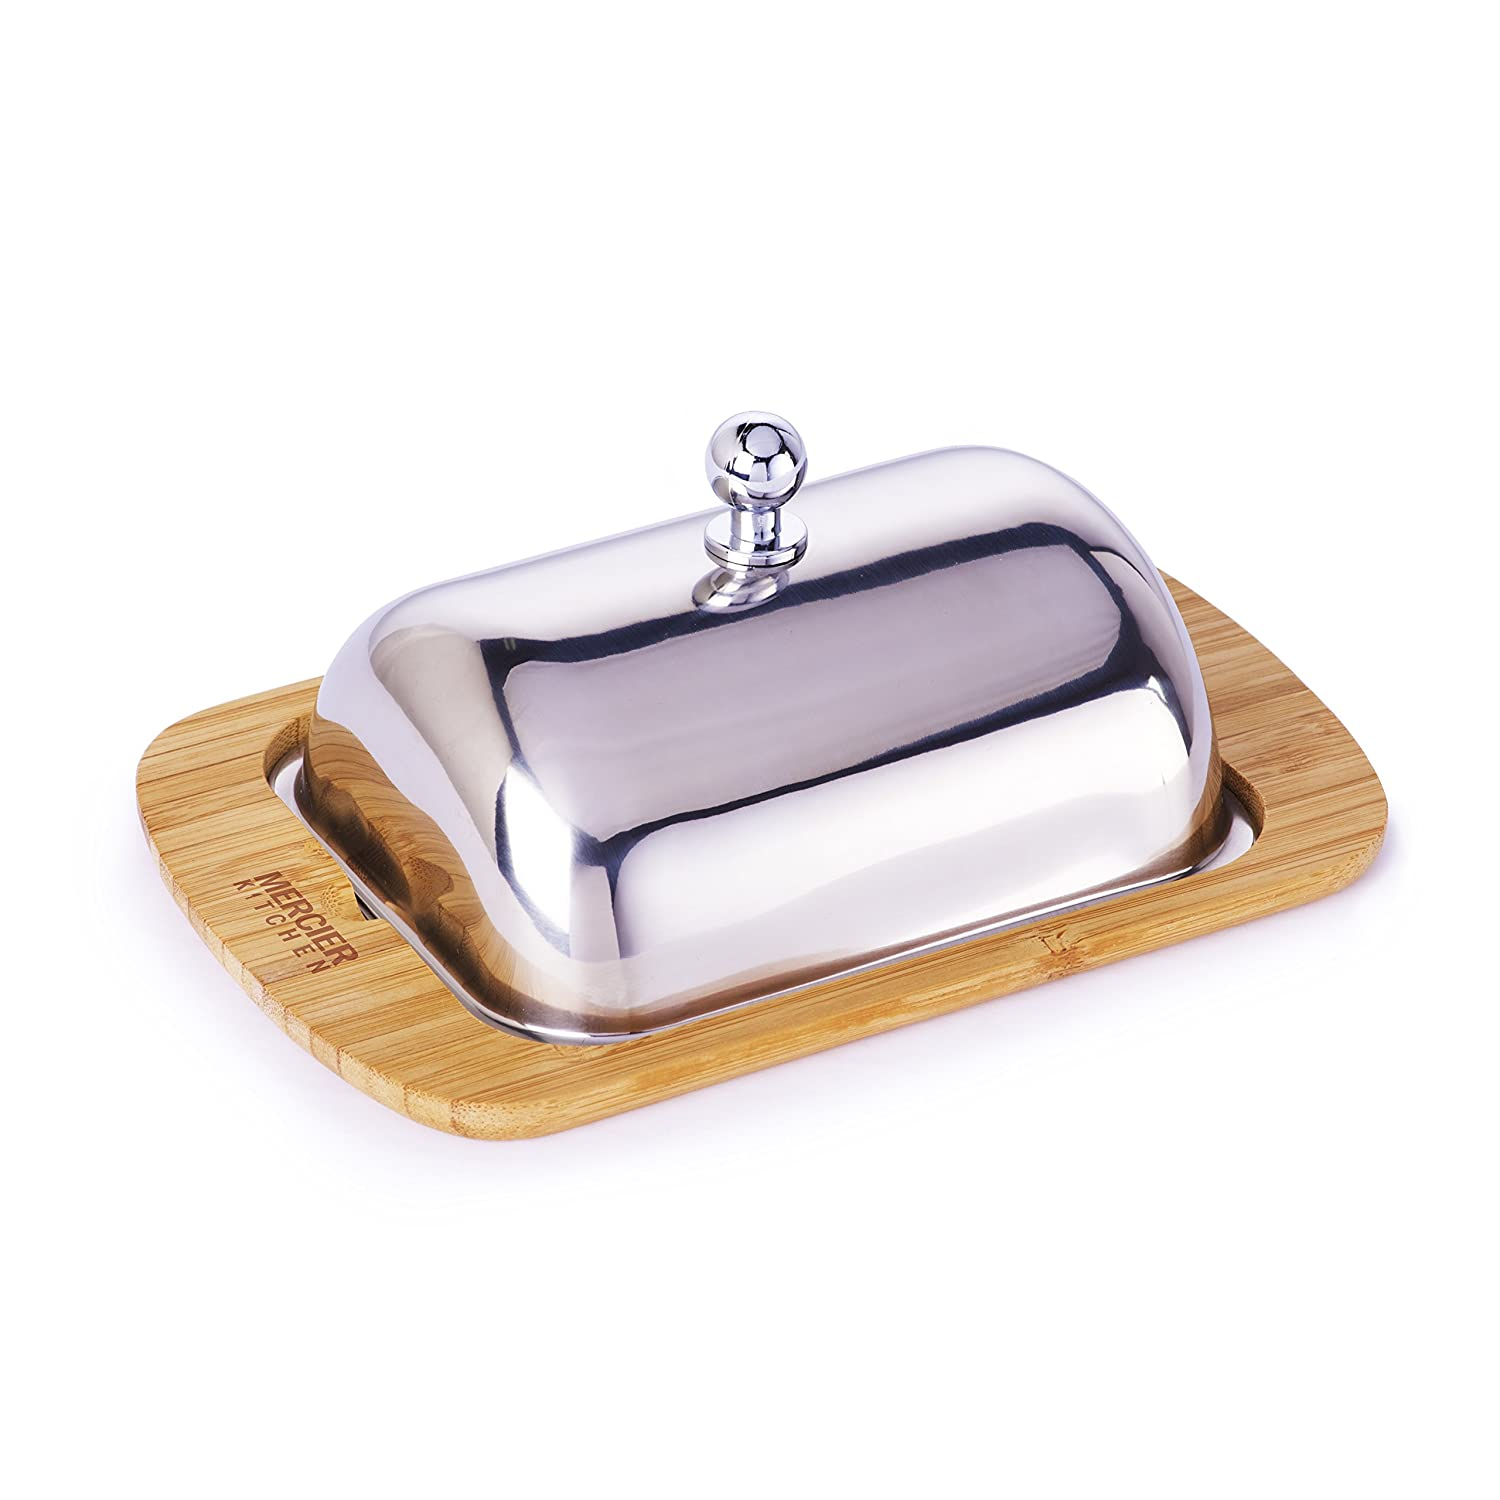 MERCIER Bamboo + Stainless Steel Butter Dish with Stainless Steel Lid MERCIER KITCHEN